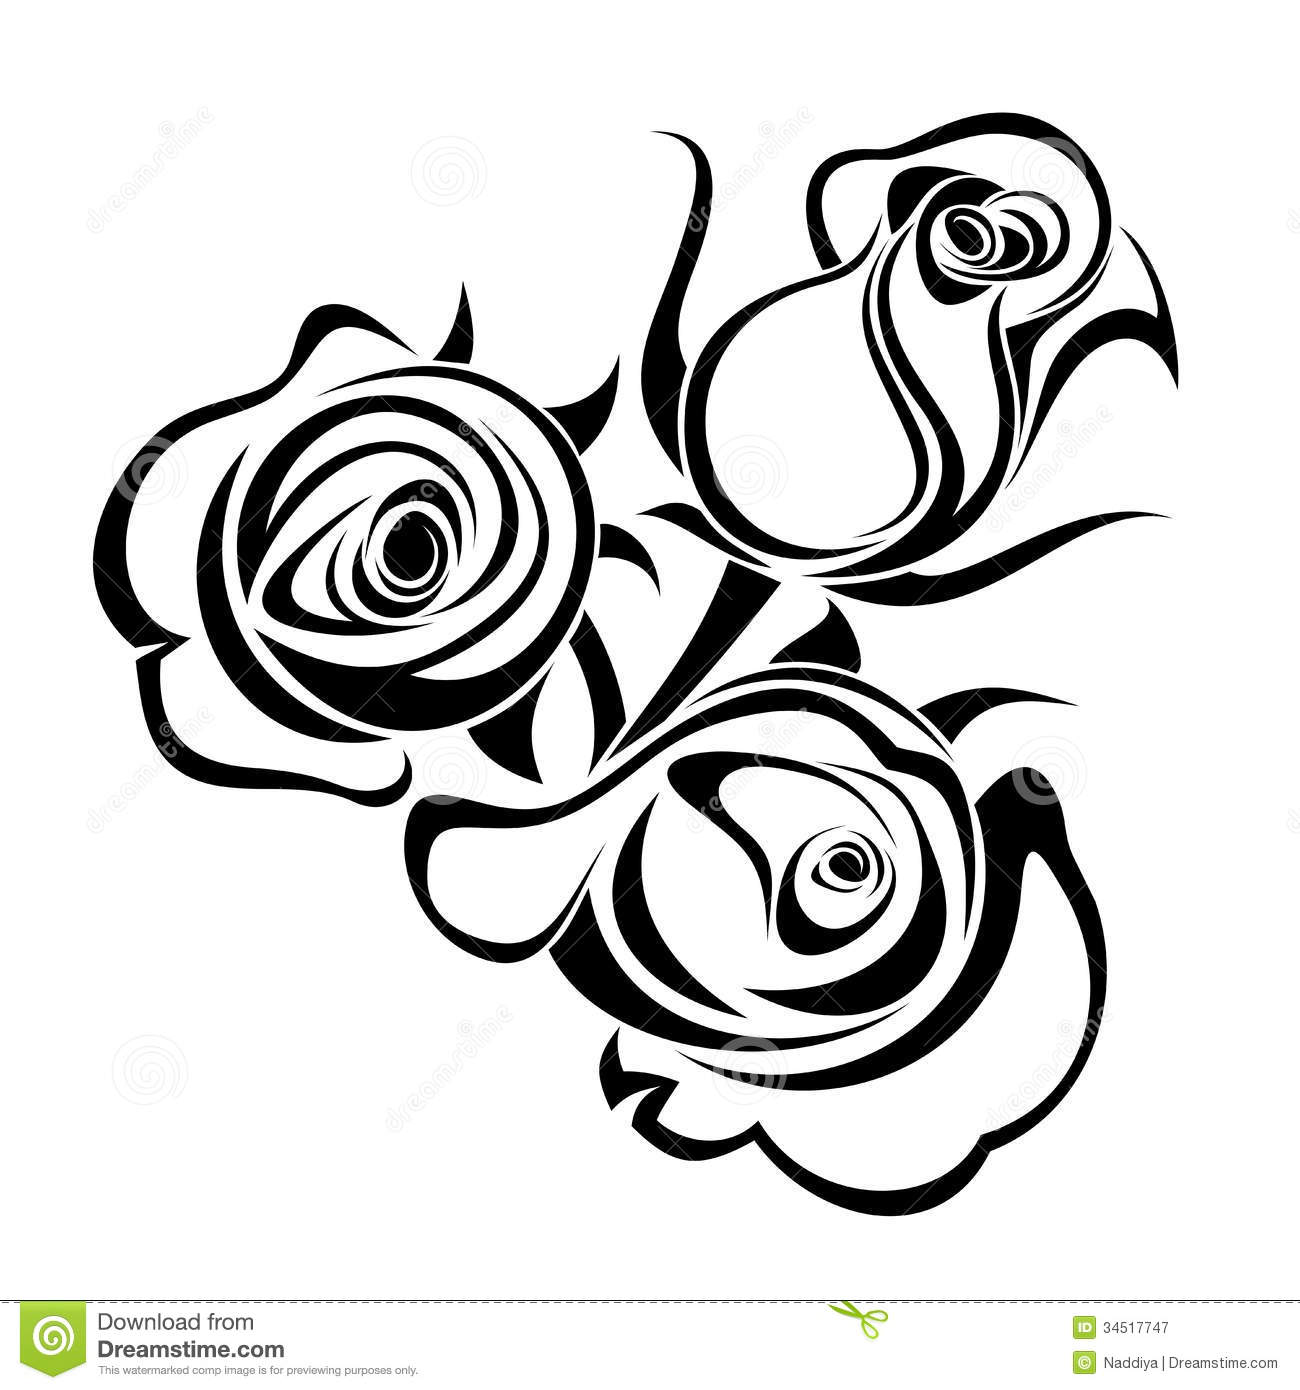 White Rose clipart silhouette Panda Images Clipart Clip Free